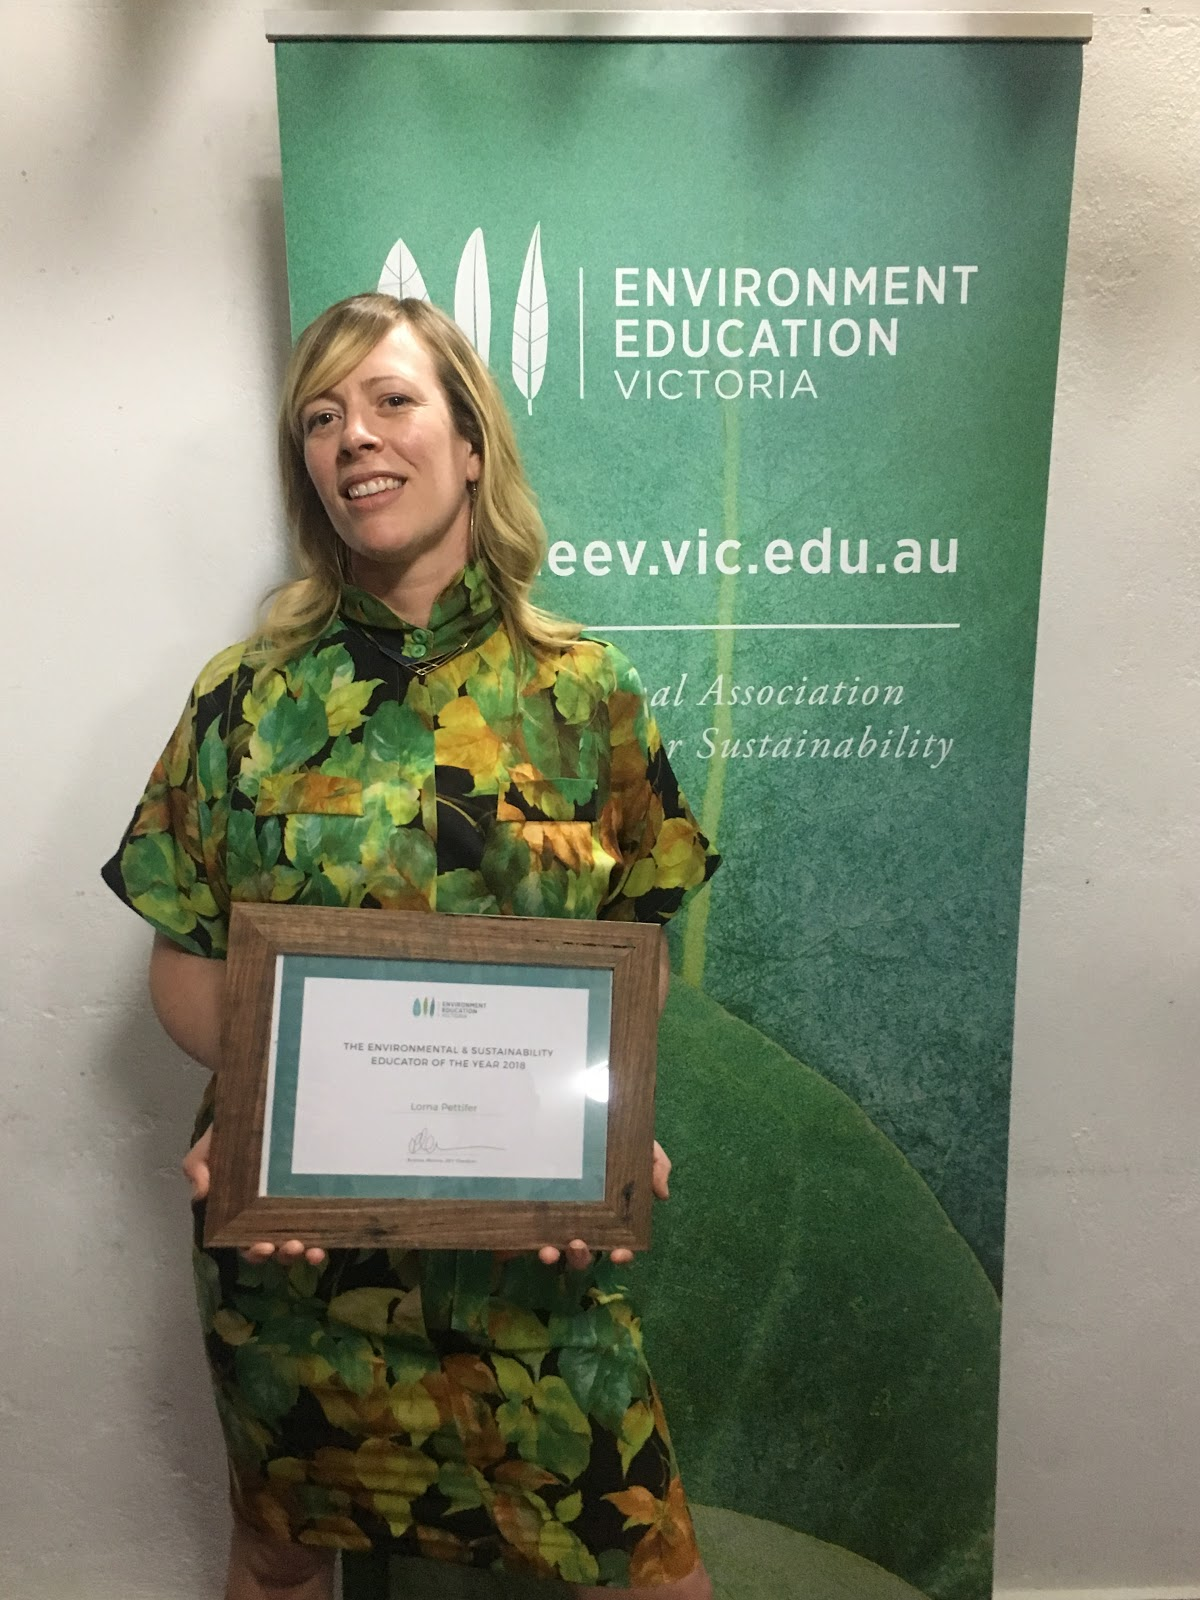 The Environmental & Sustainability Educator of the Year 2018, Lorna Pettifer